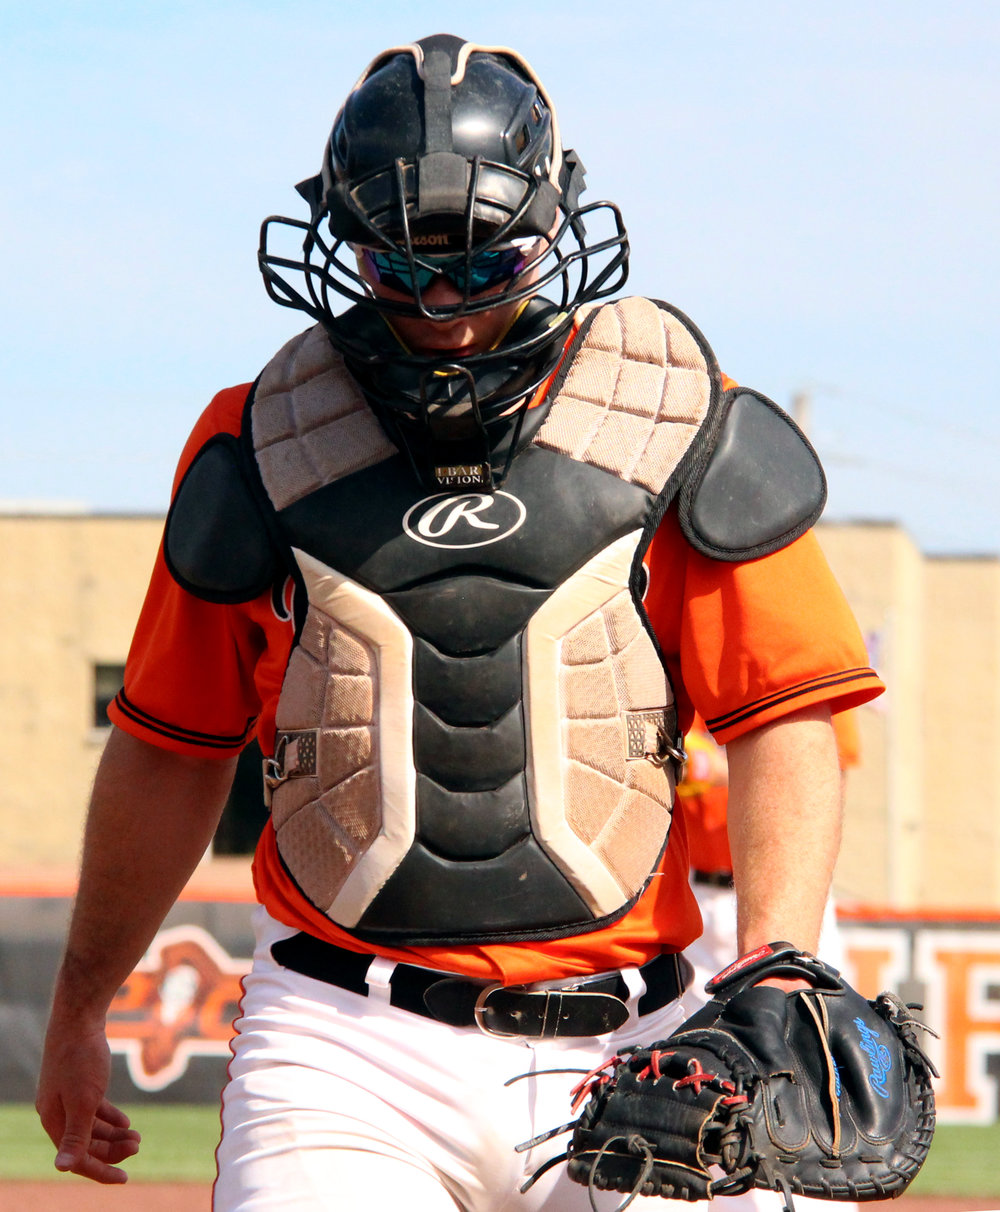 ROSS MARTIN/Citizen photo ABOVE: Platte County senior Jared Wilson walks out of the dugout as Lee's Summit players celebrate a 1-0 win in a Class 5 quarterfinal Thursday, May 25 at Platte County High School. RIGHT: Platte County junior centerfielder Kobe Cummings comes in to make a catch. BELOW: Platte County senior catcher Justin Mitchell walks back to home plate after a conversation on the mound.